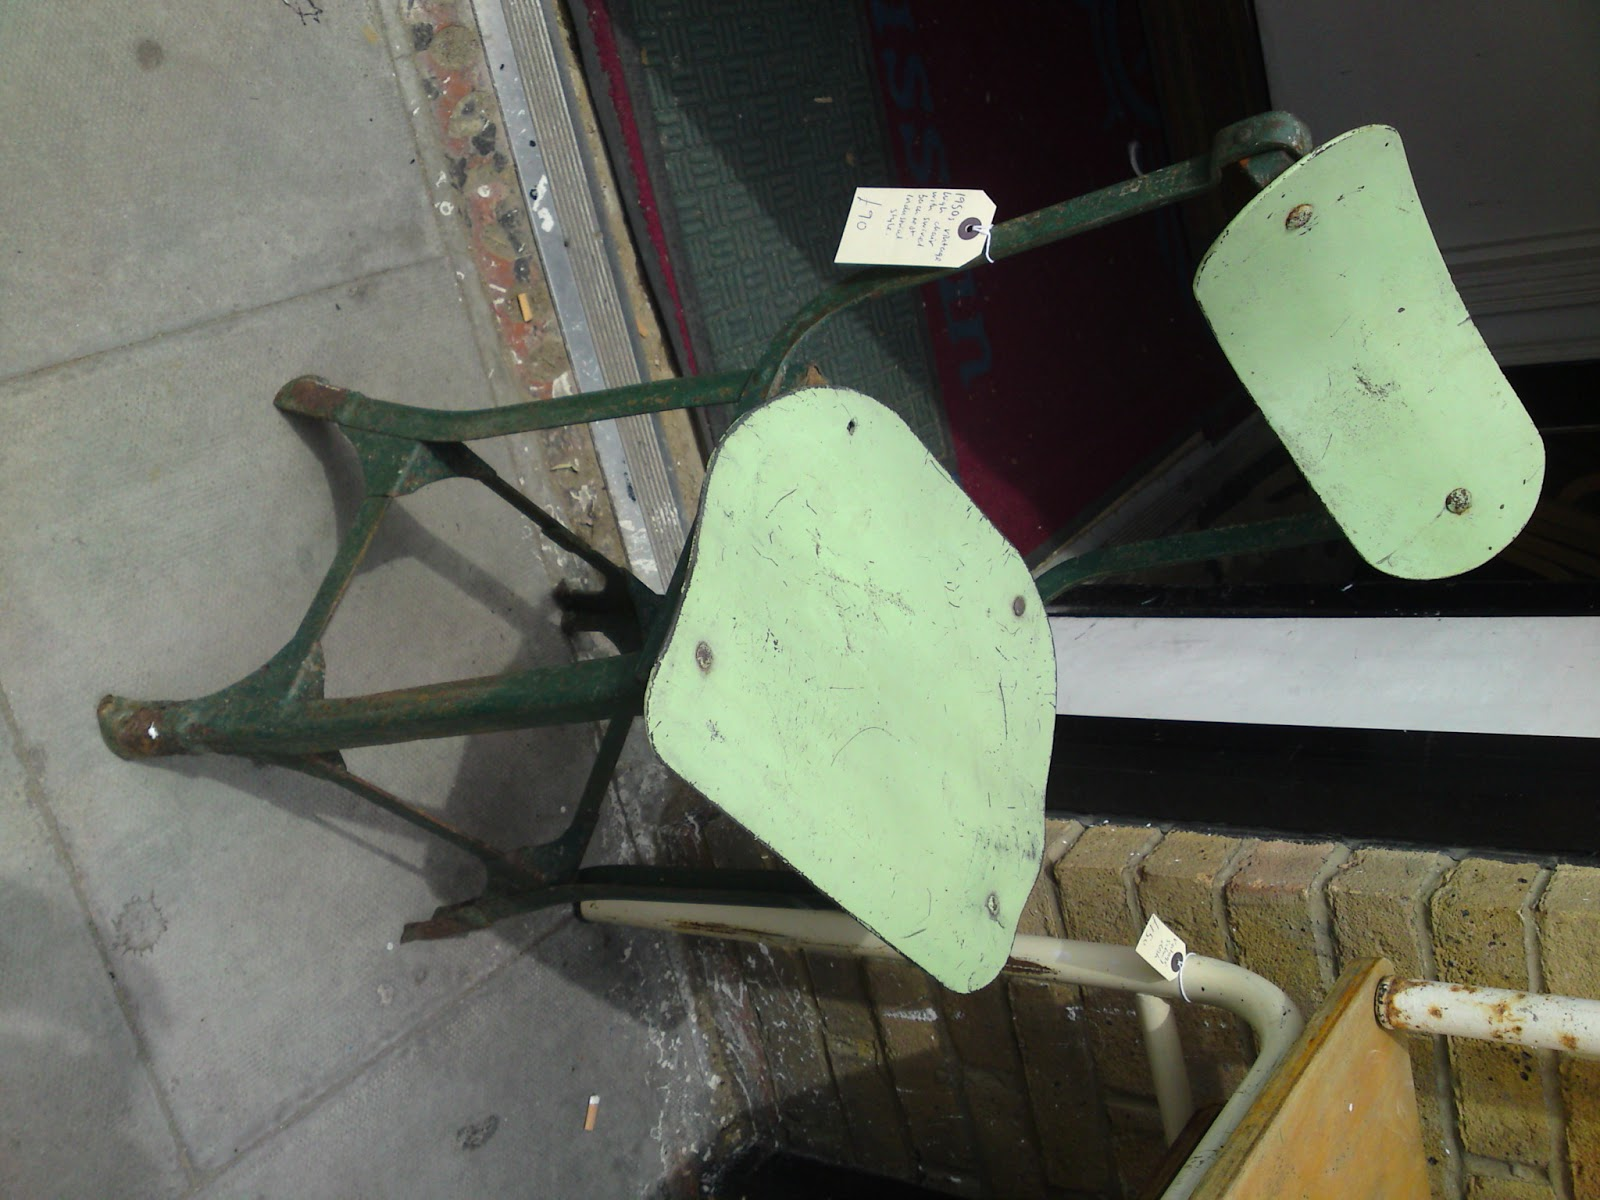 1940s vintage industrial tall chair with swivel back rest £90 SALE